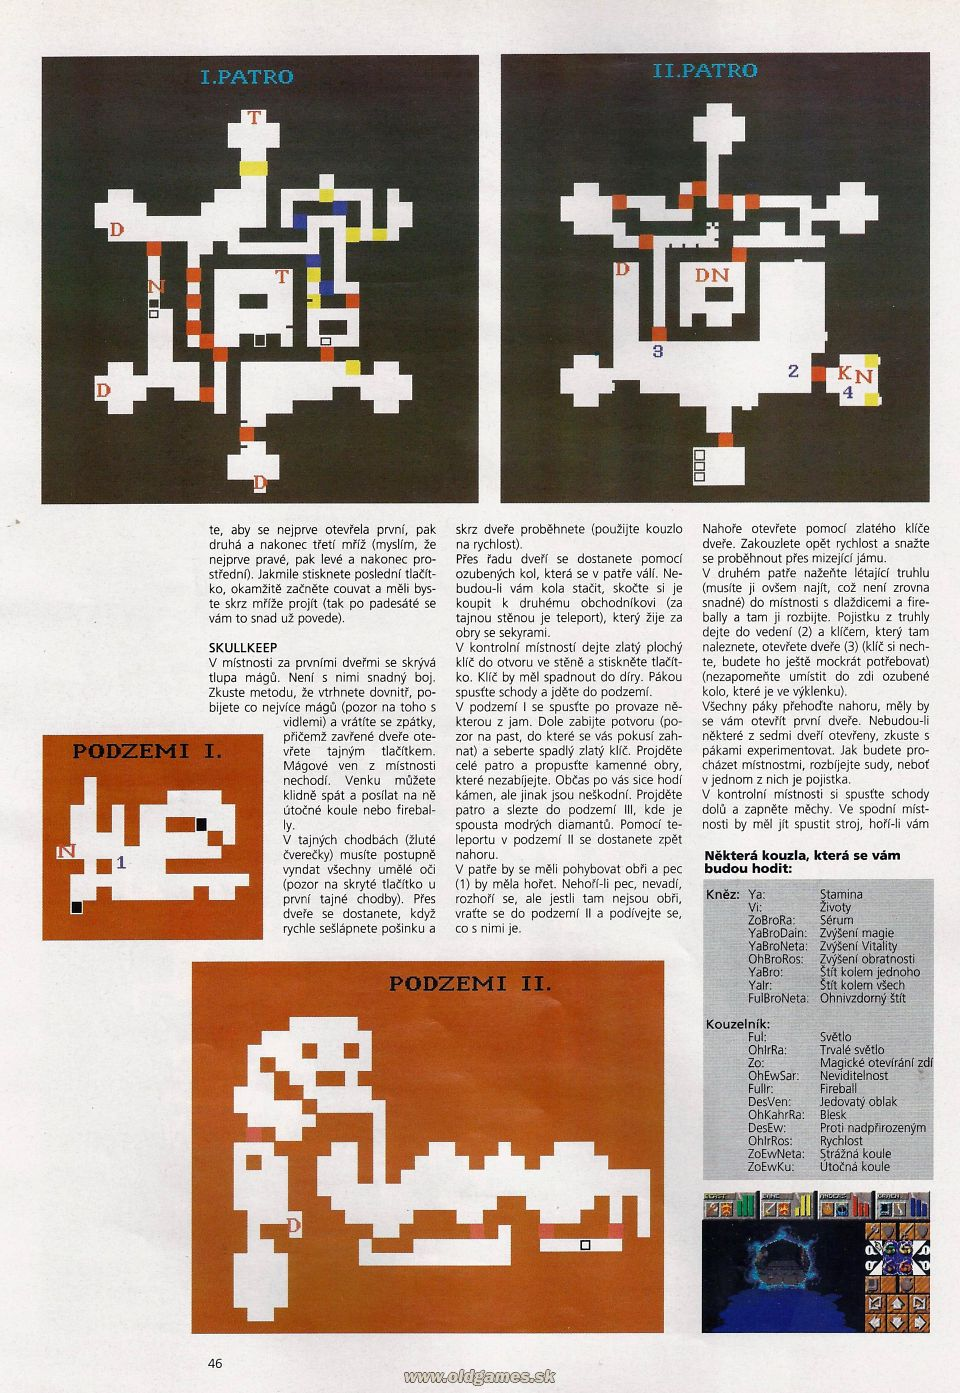 Dungeon Master II Hints published in Czech magazine 'Level', Issue #8 September 1995, Page 46